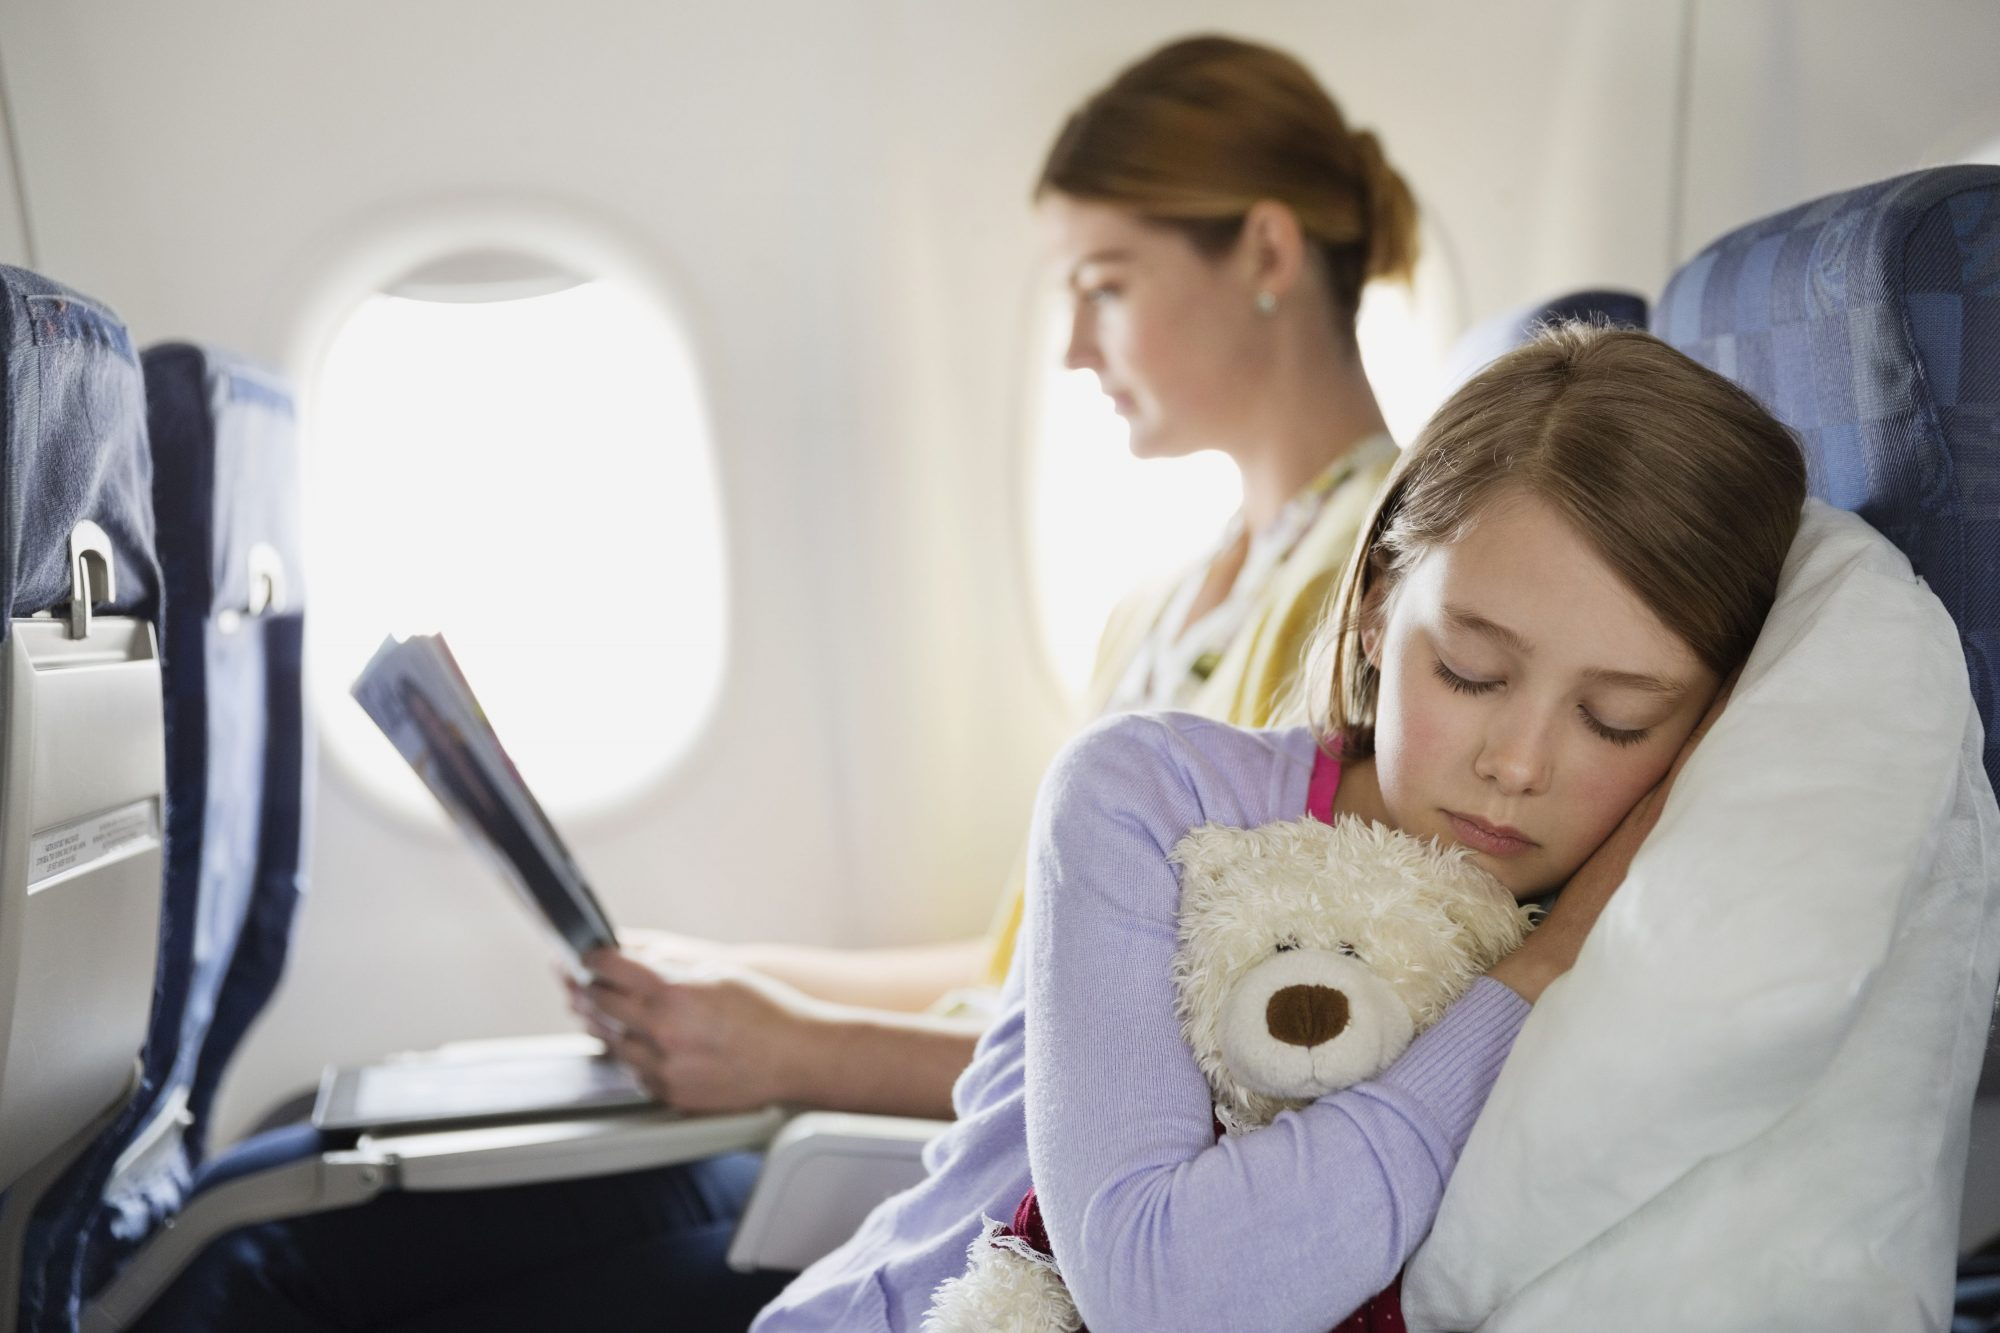 Mother and Daughter on Airplane